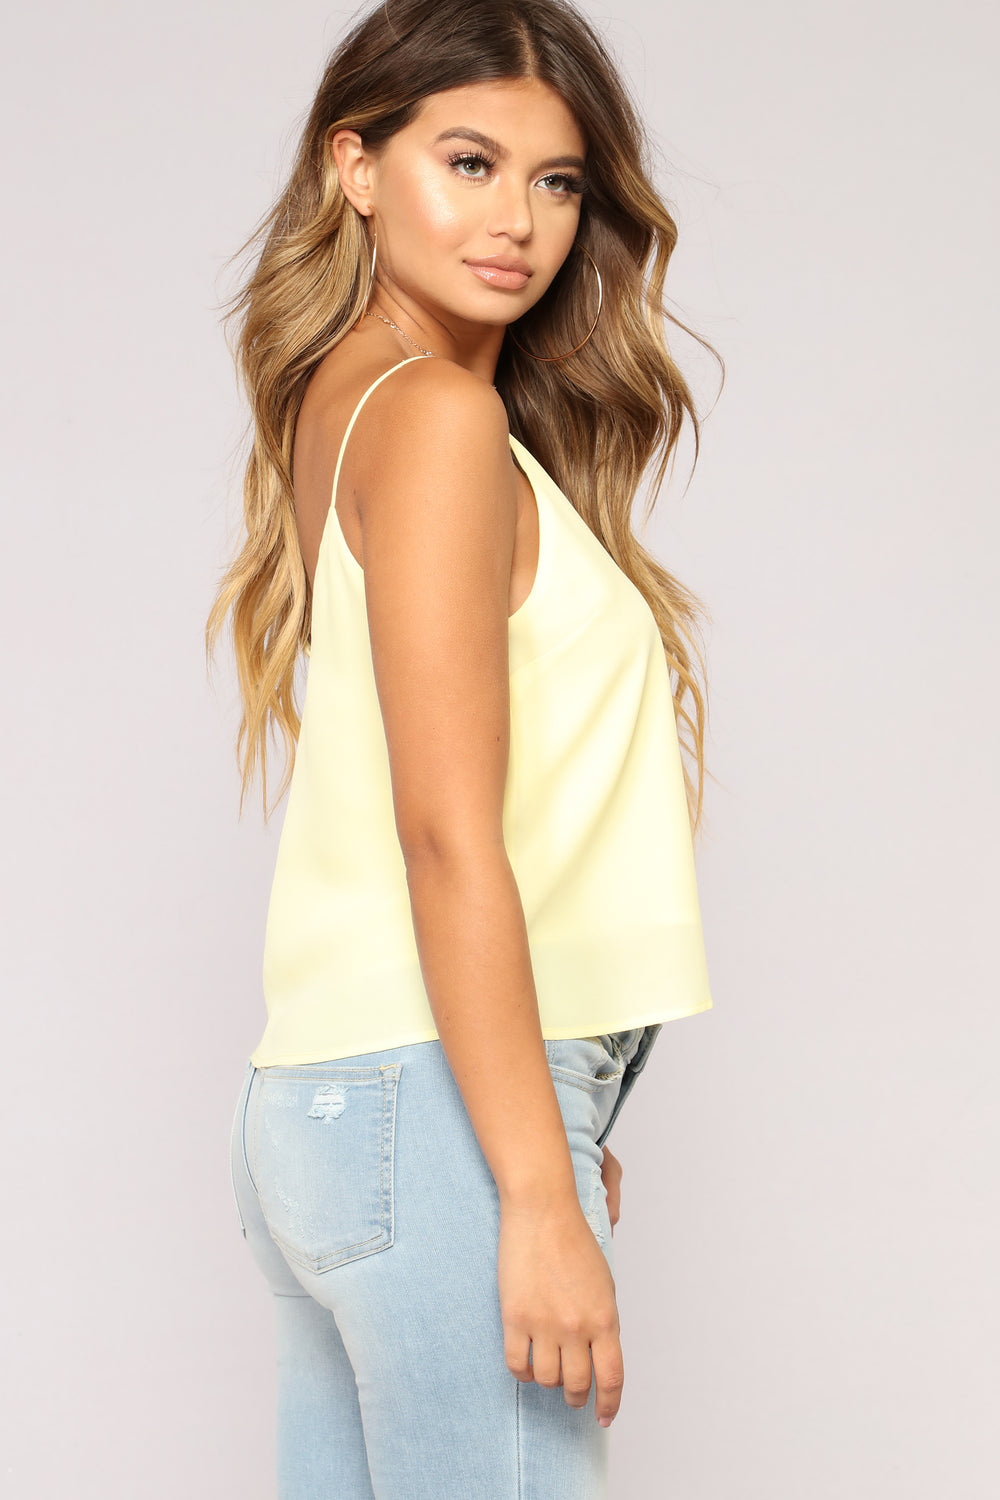 Sweet Envy Top - Yellow